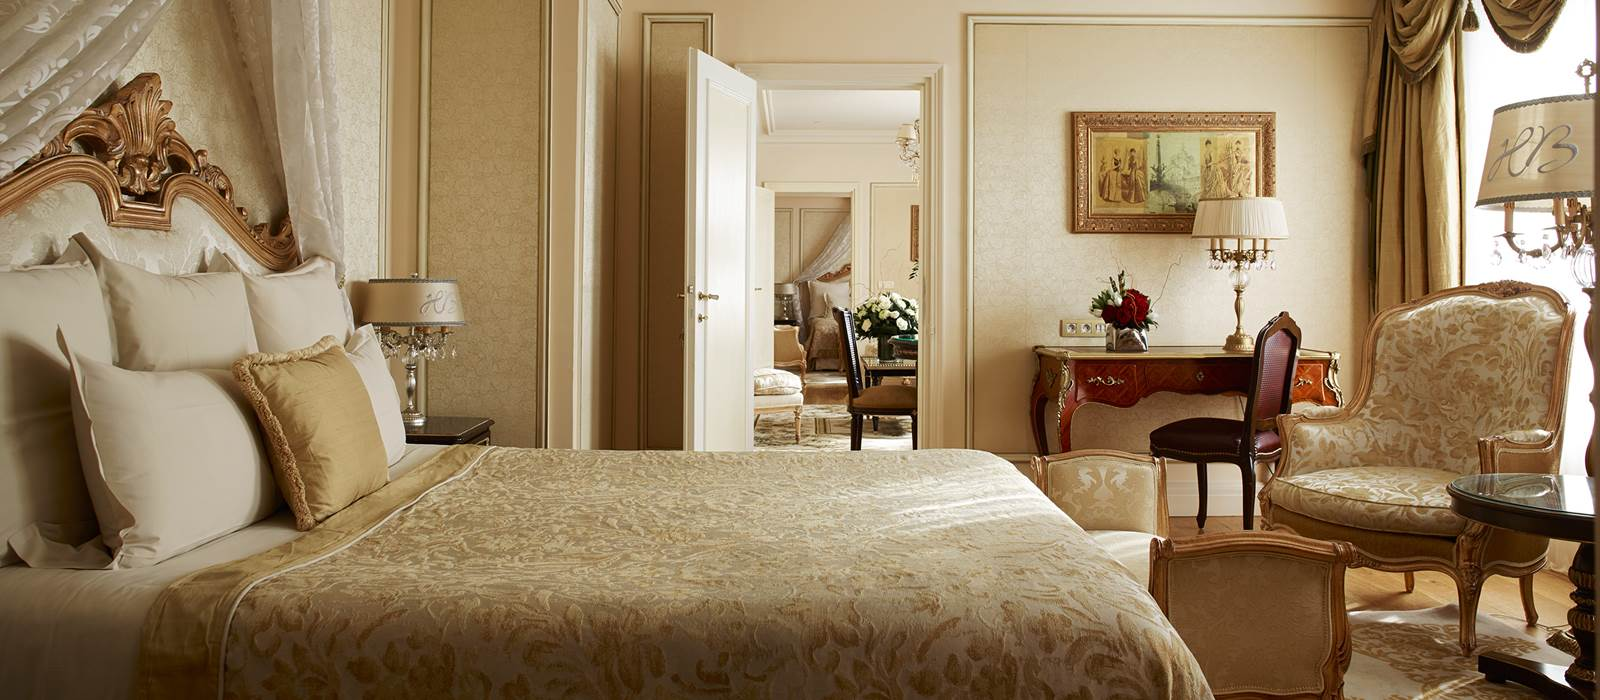 H tel balzac 5 star boutique hotel champs elys es paris for Five star boutique